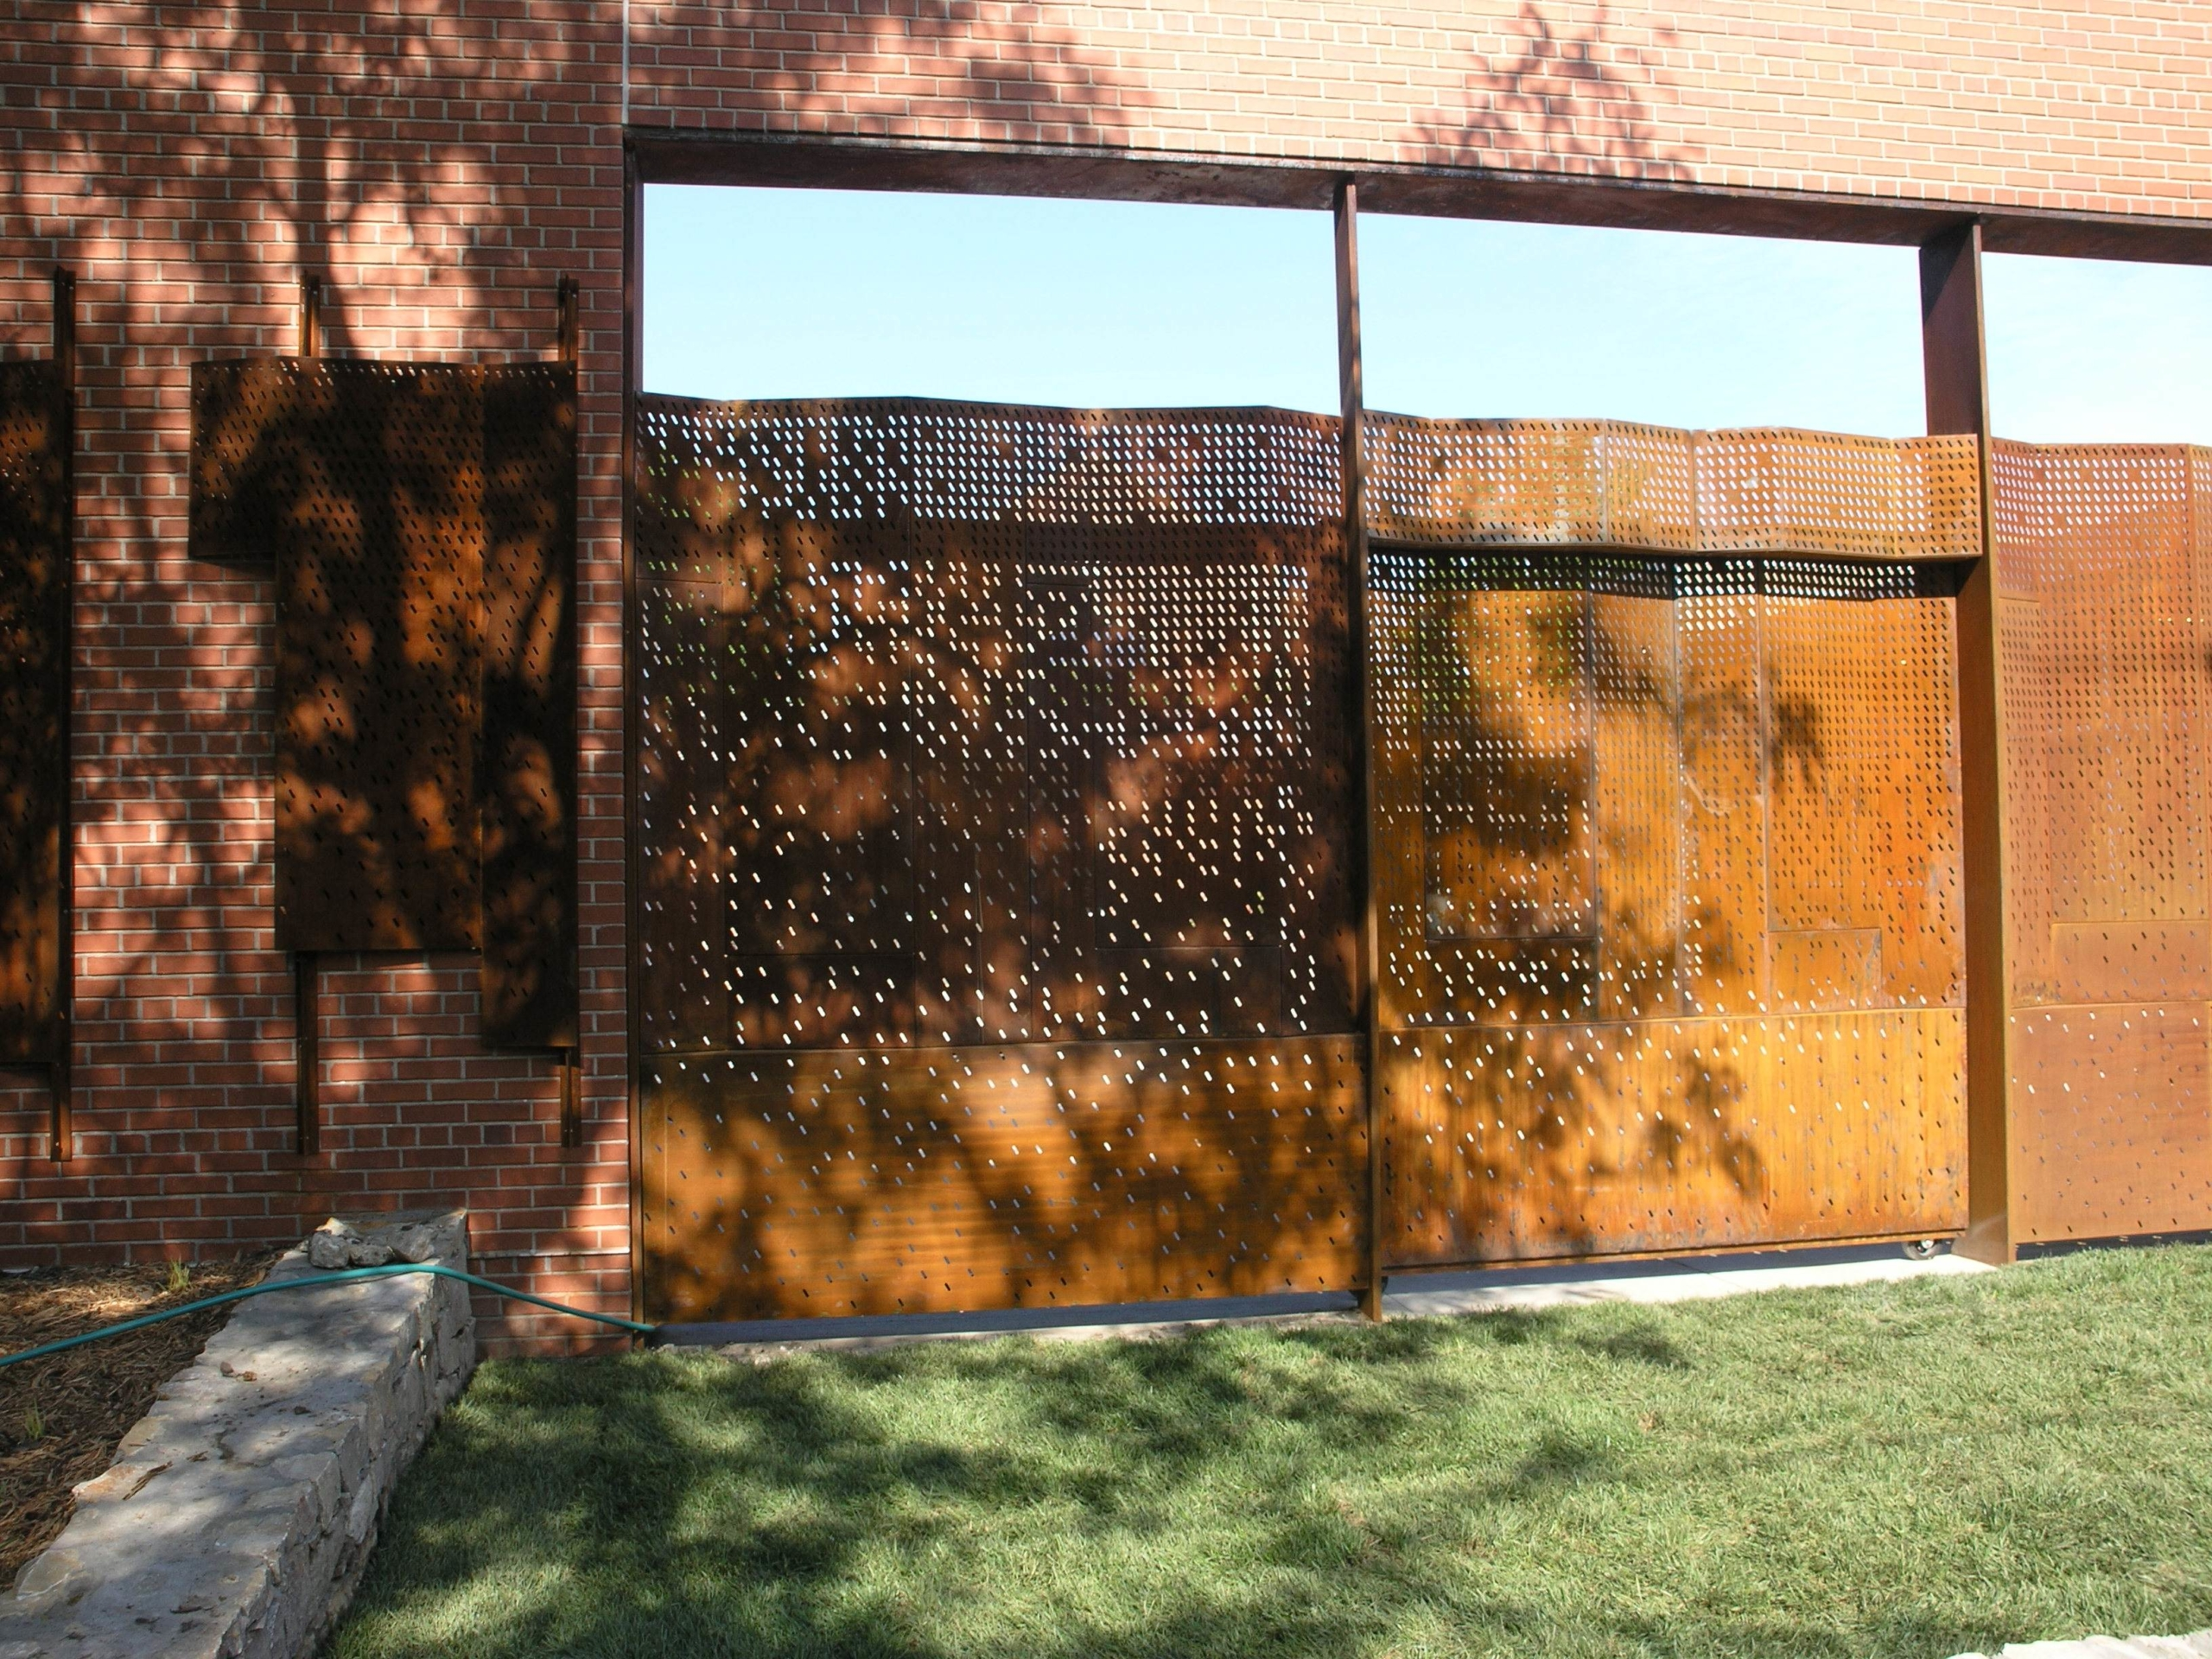 The large gate provides a sense of privacy while allowing for open events at the school.